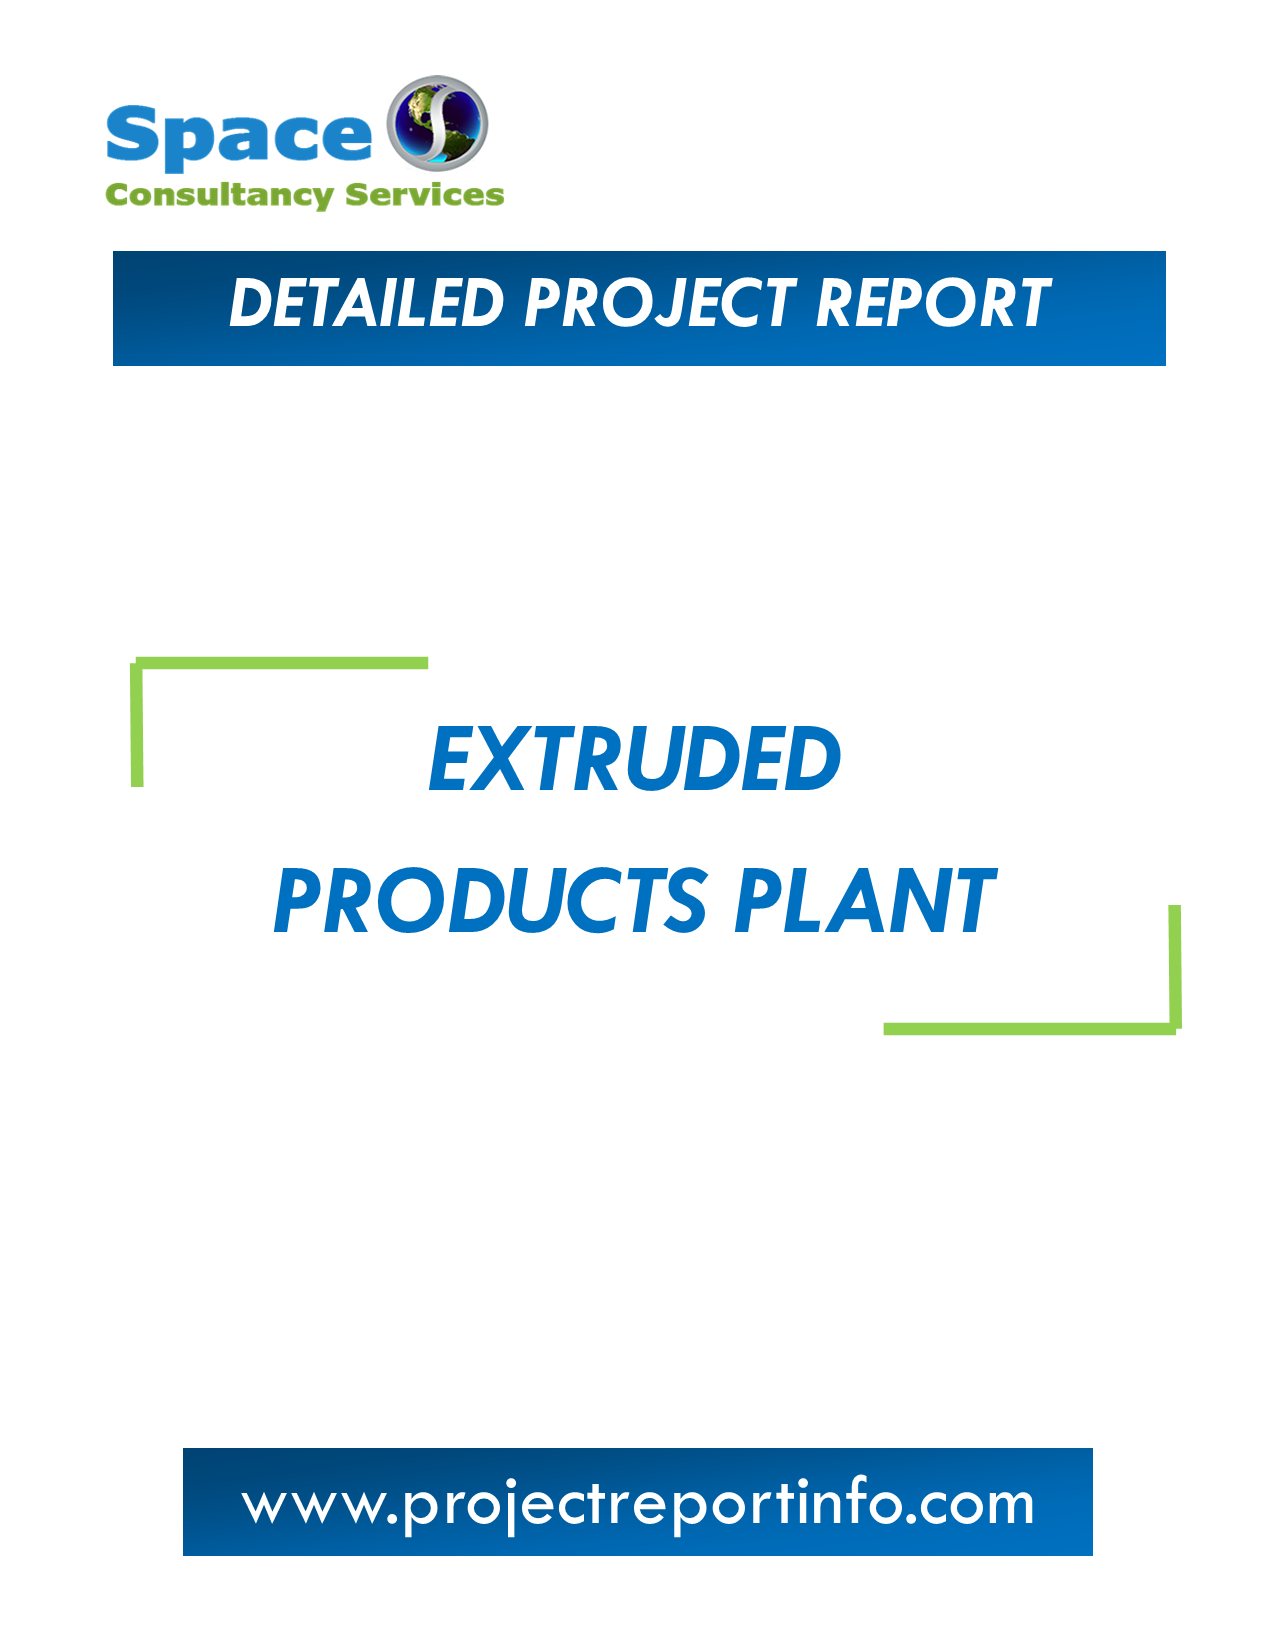 Project Report on Extruded Products Plant